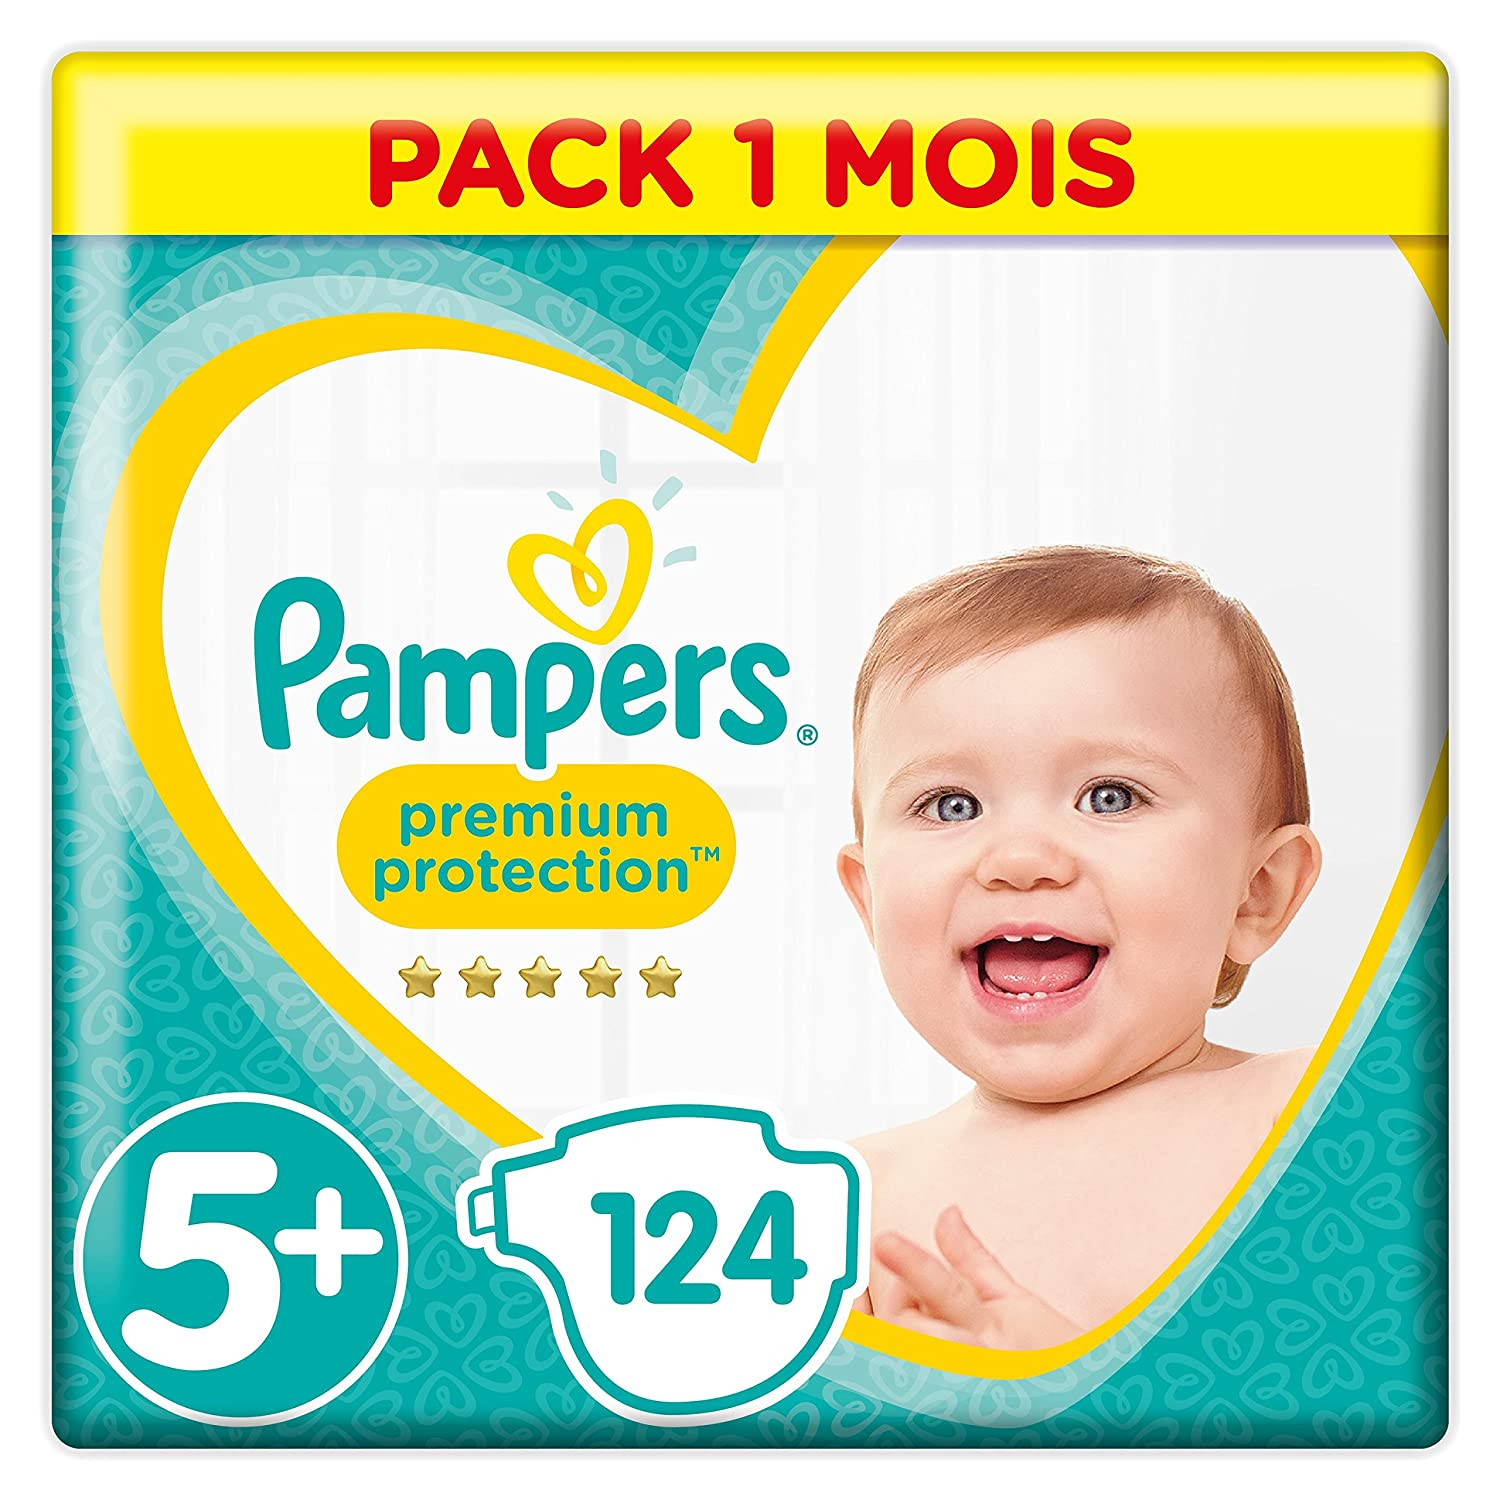 Pampers - Premium Protection - Couches Taille 5 (11 - 23 kg) - Pack 1 mois (x136 couches) 81561734